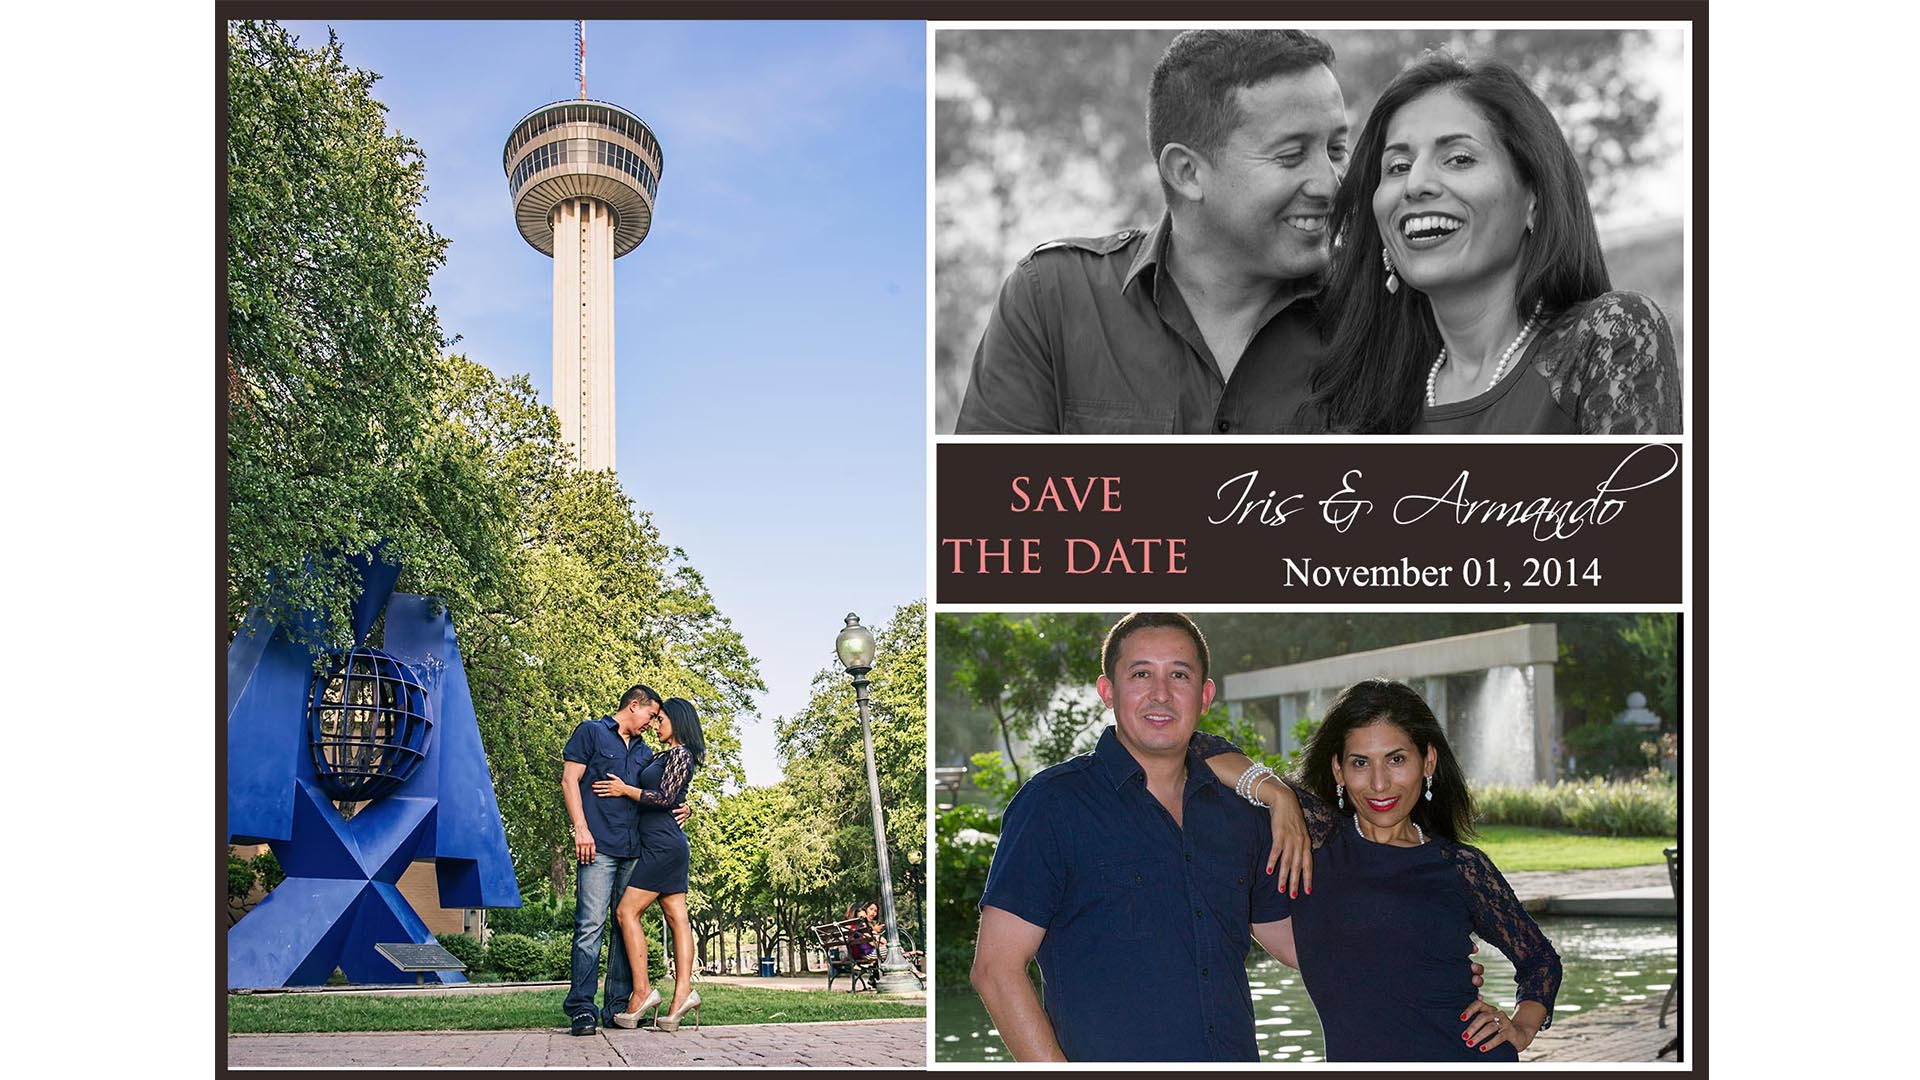 Save the Date Card from San Antonio